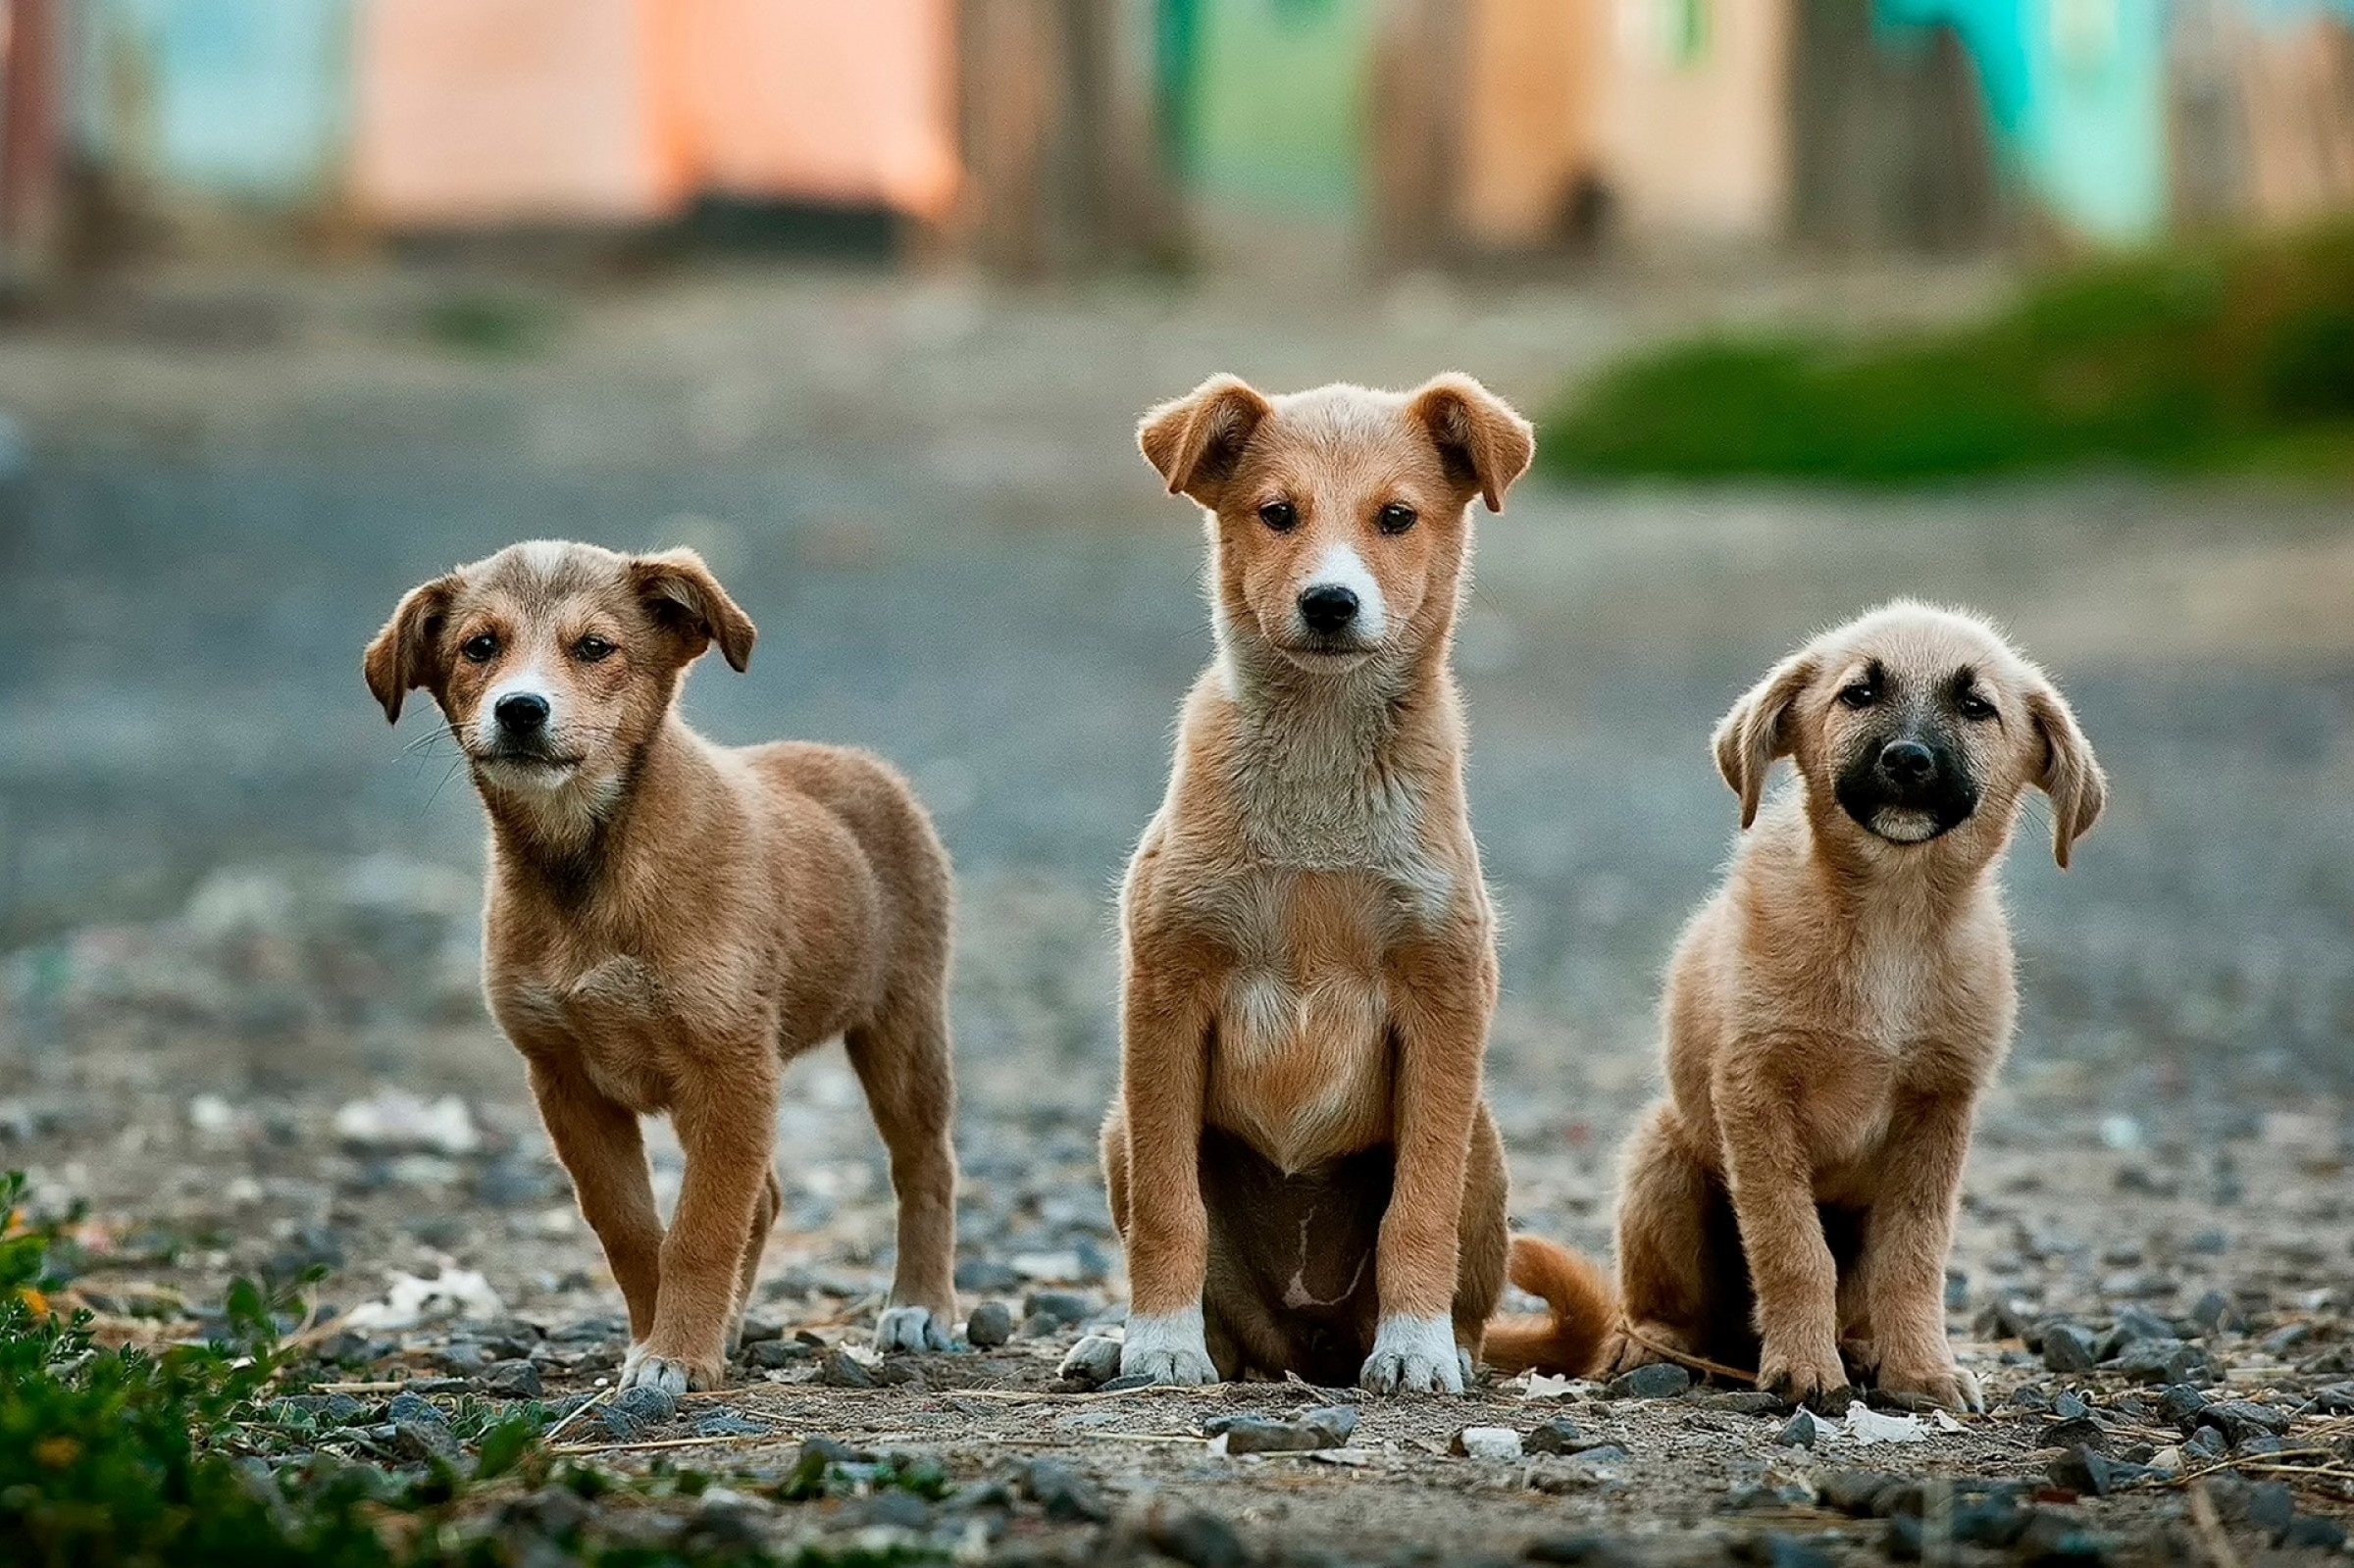 Dogs-image-for-abc-program